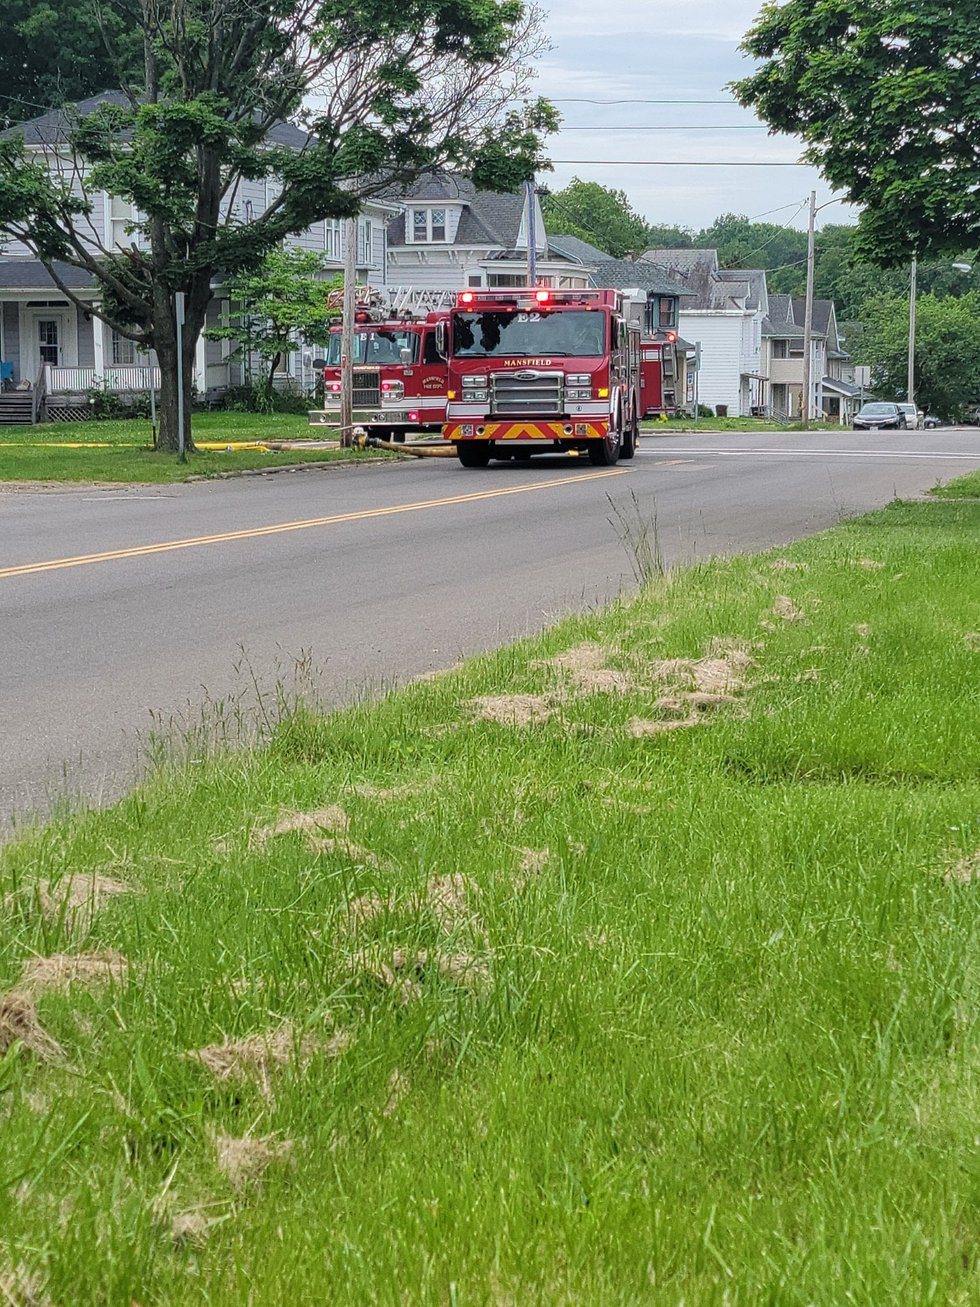 Five residents were pulled from a burning home on Arthur Avenue.